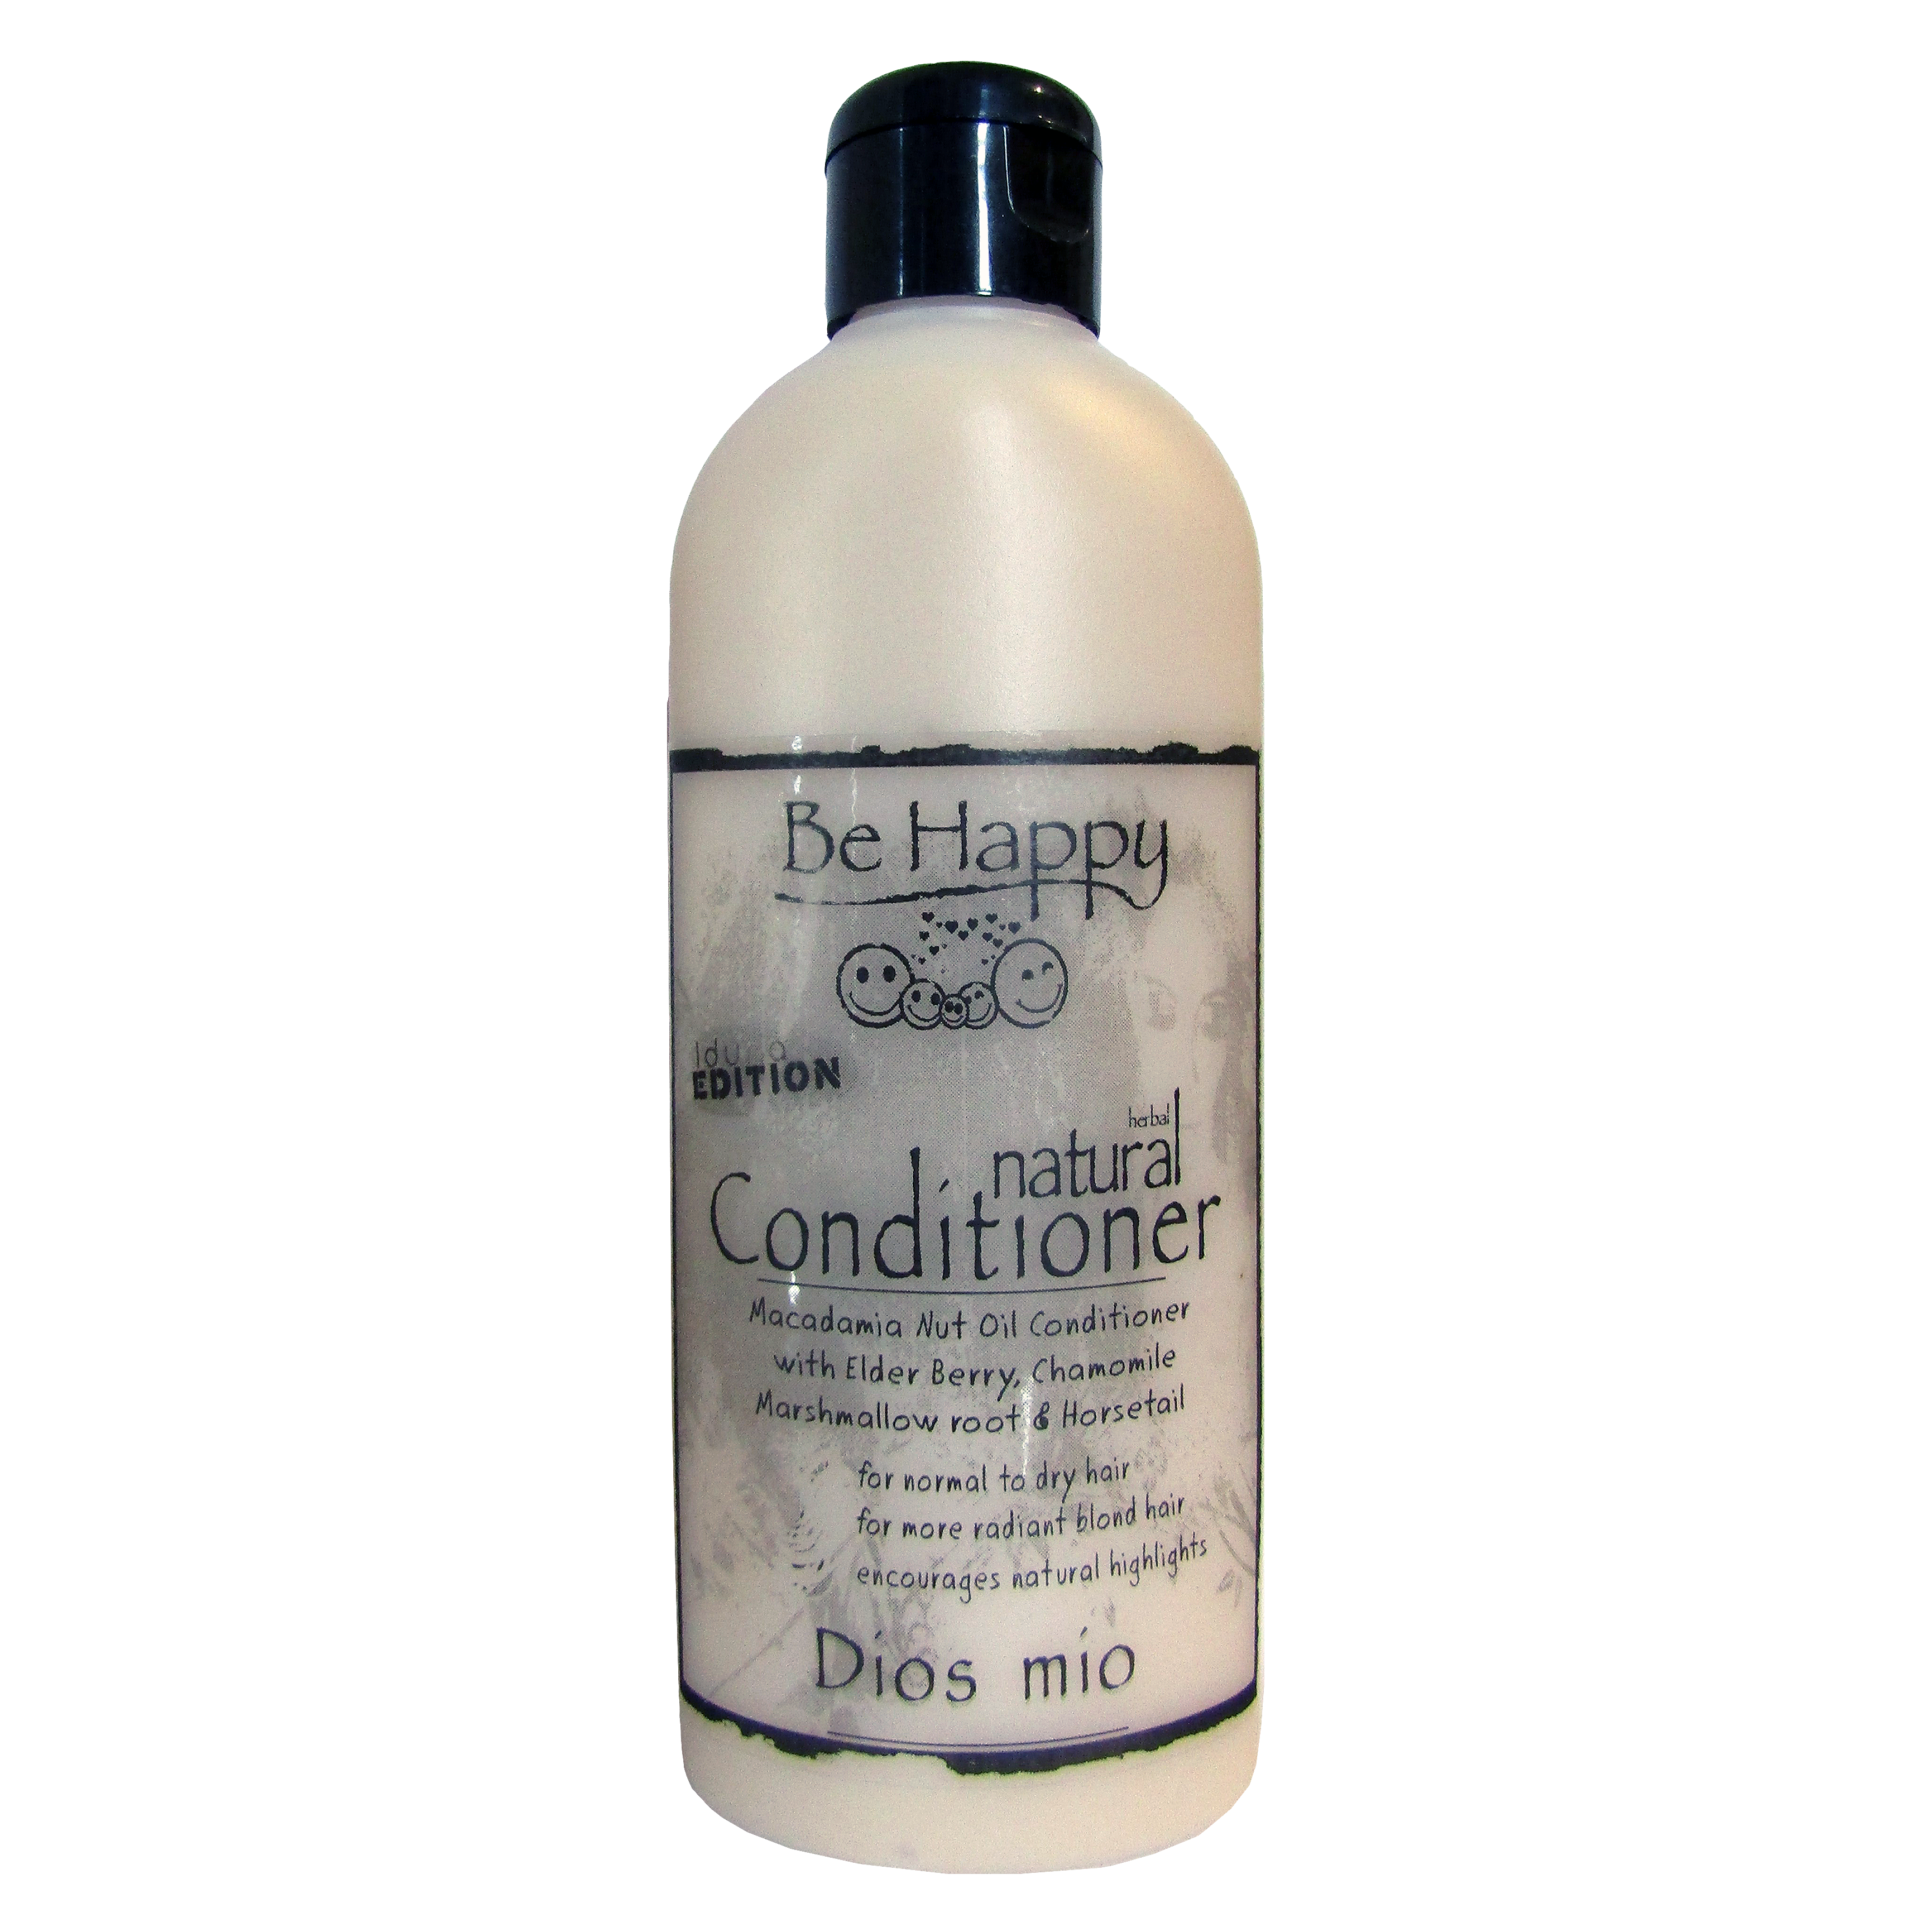 Conditioner  Dios mio  - for more brilliant blond -  __ 200 ml _